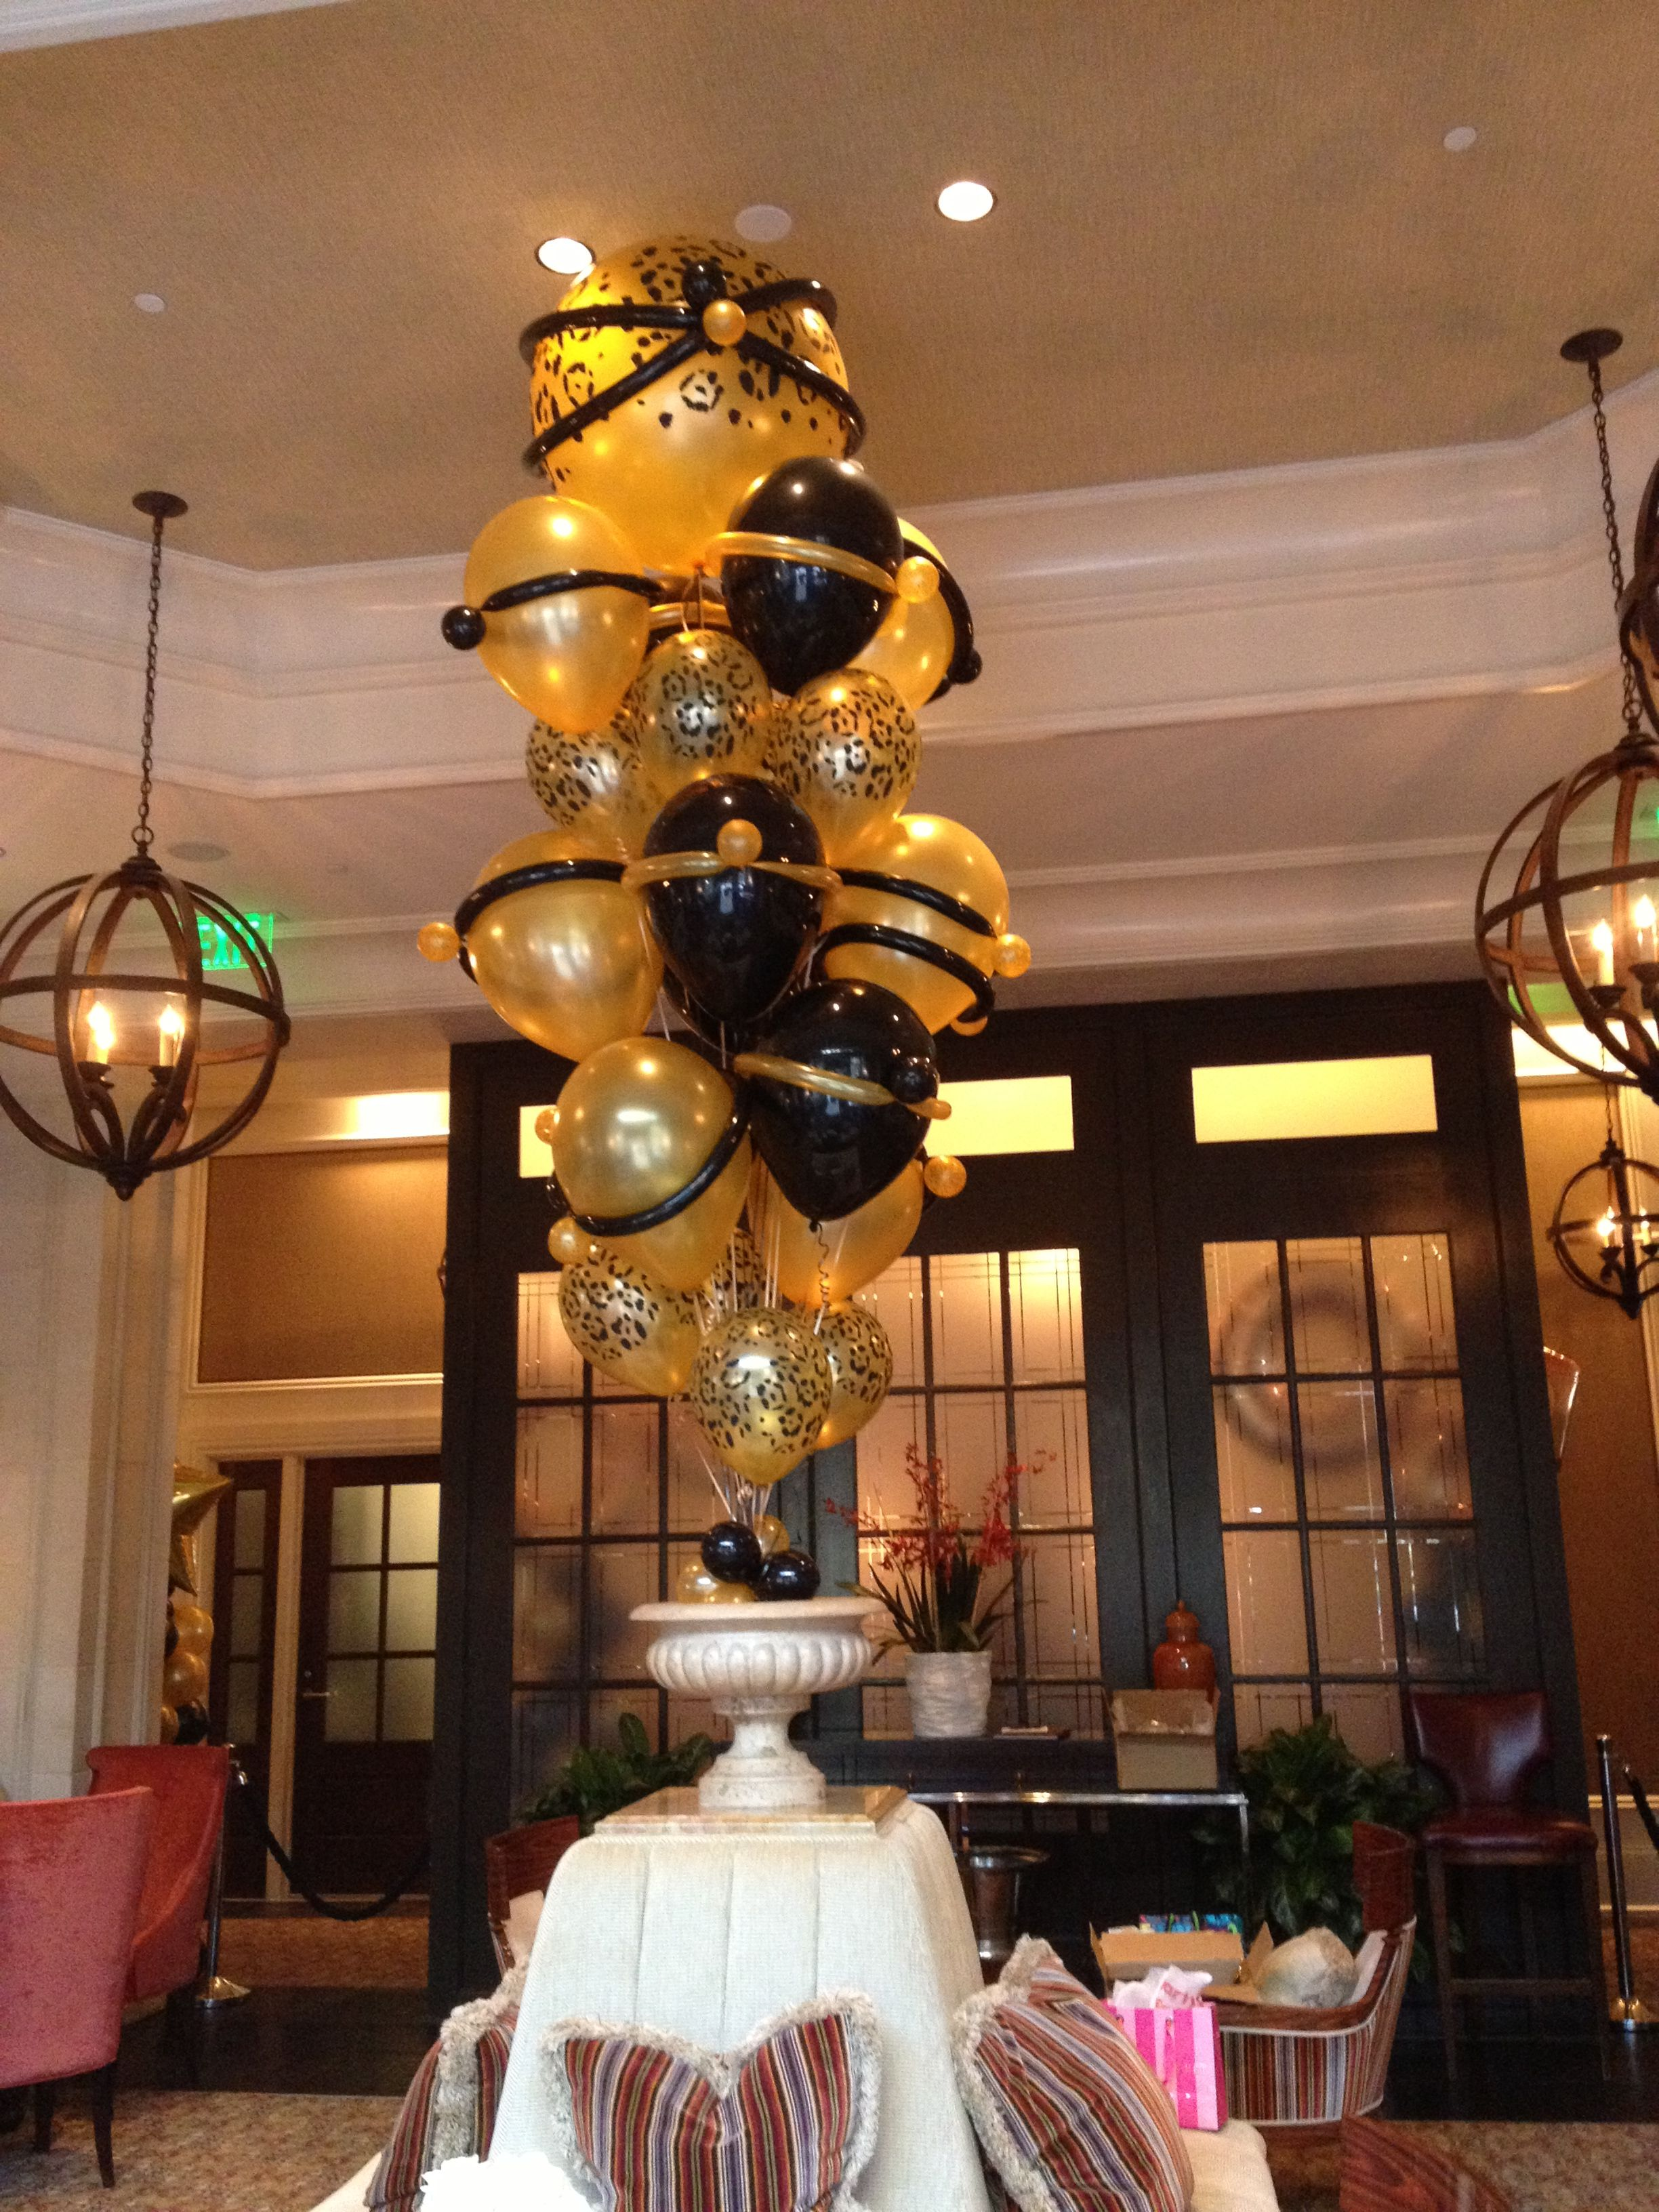 Big Impact Balloon Bouquets